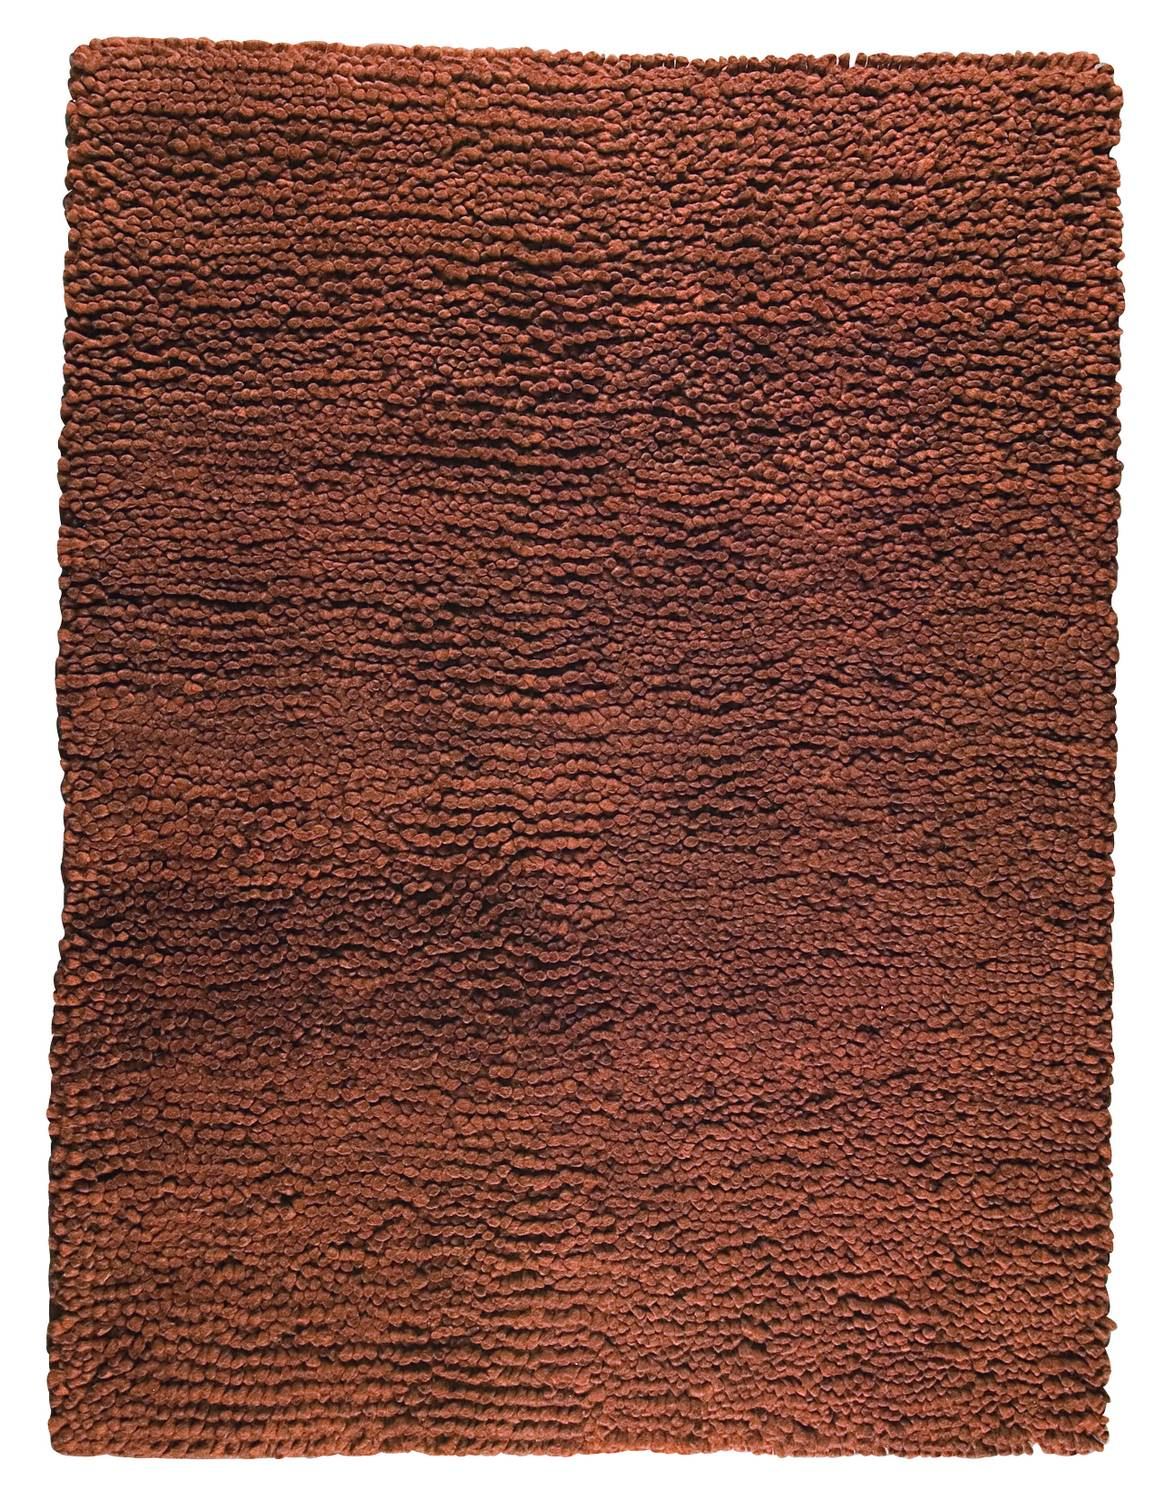 Mat the basics berber area rug bronze for Wool berber area rug